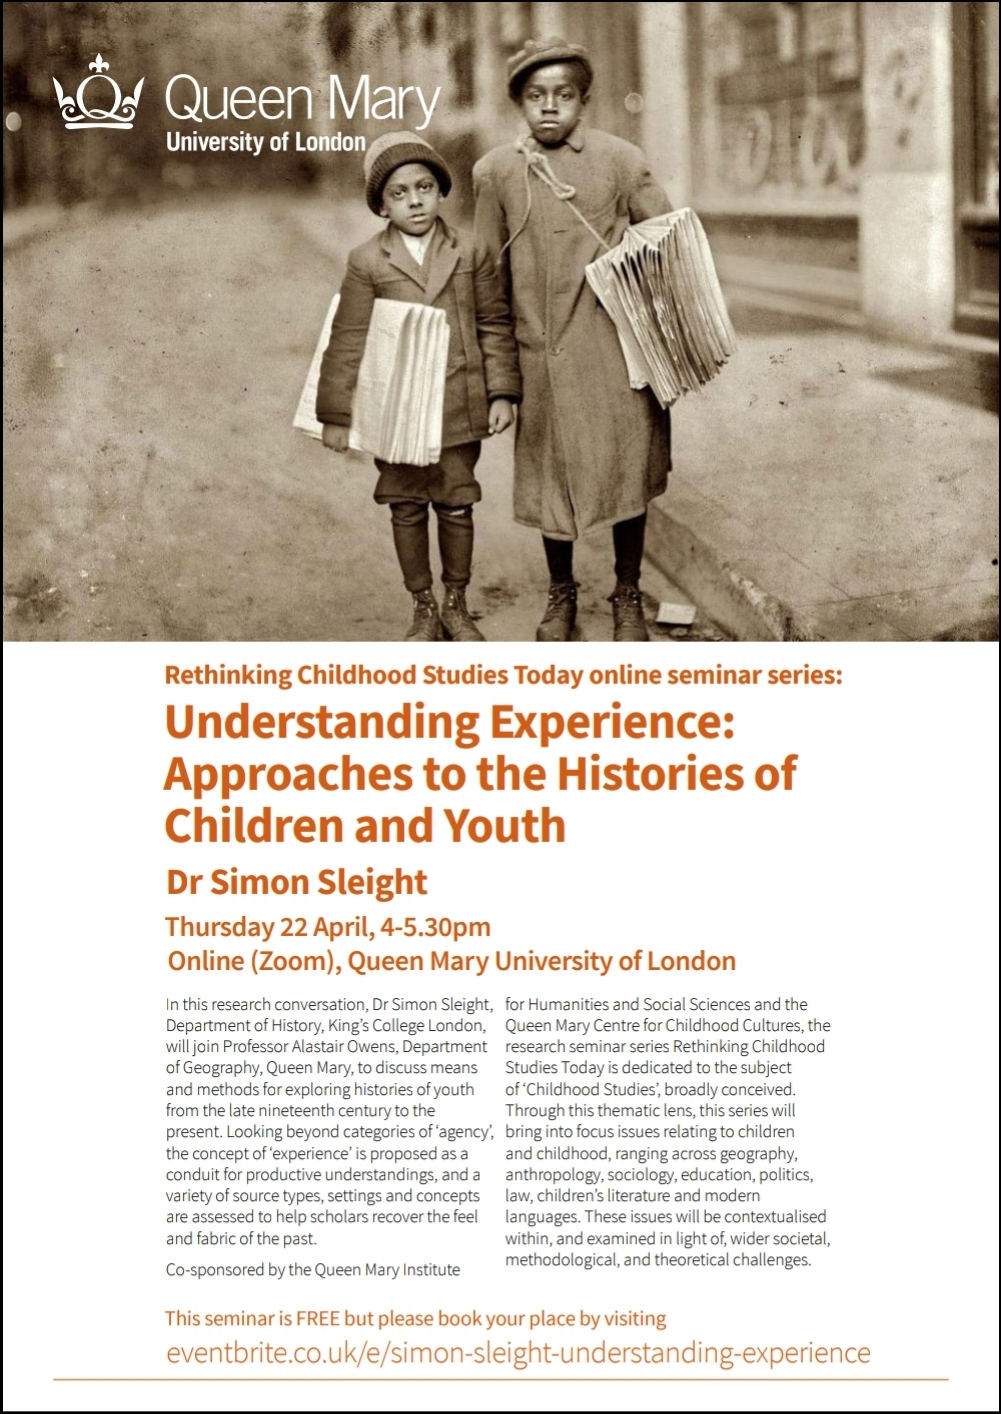 Understanding Experience: Approaches to the Histories of Children and Youth Research conversation with Dr Simon Sleight (KCL) Part 1 of the Seminar Series Rethinking Childhood Studies Today (Centre for Childhood Cultures/ IHSS)